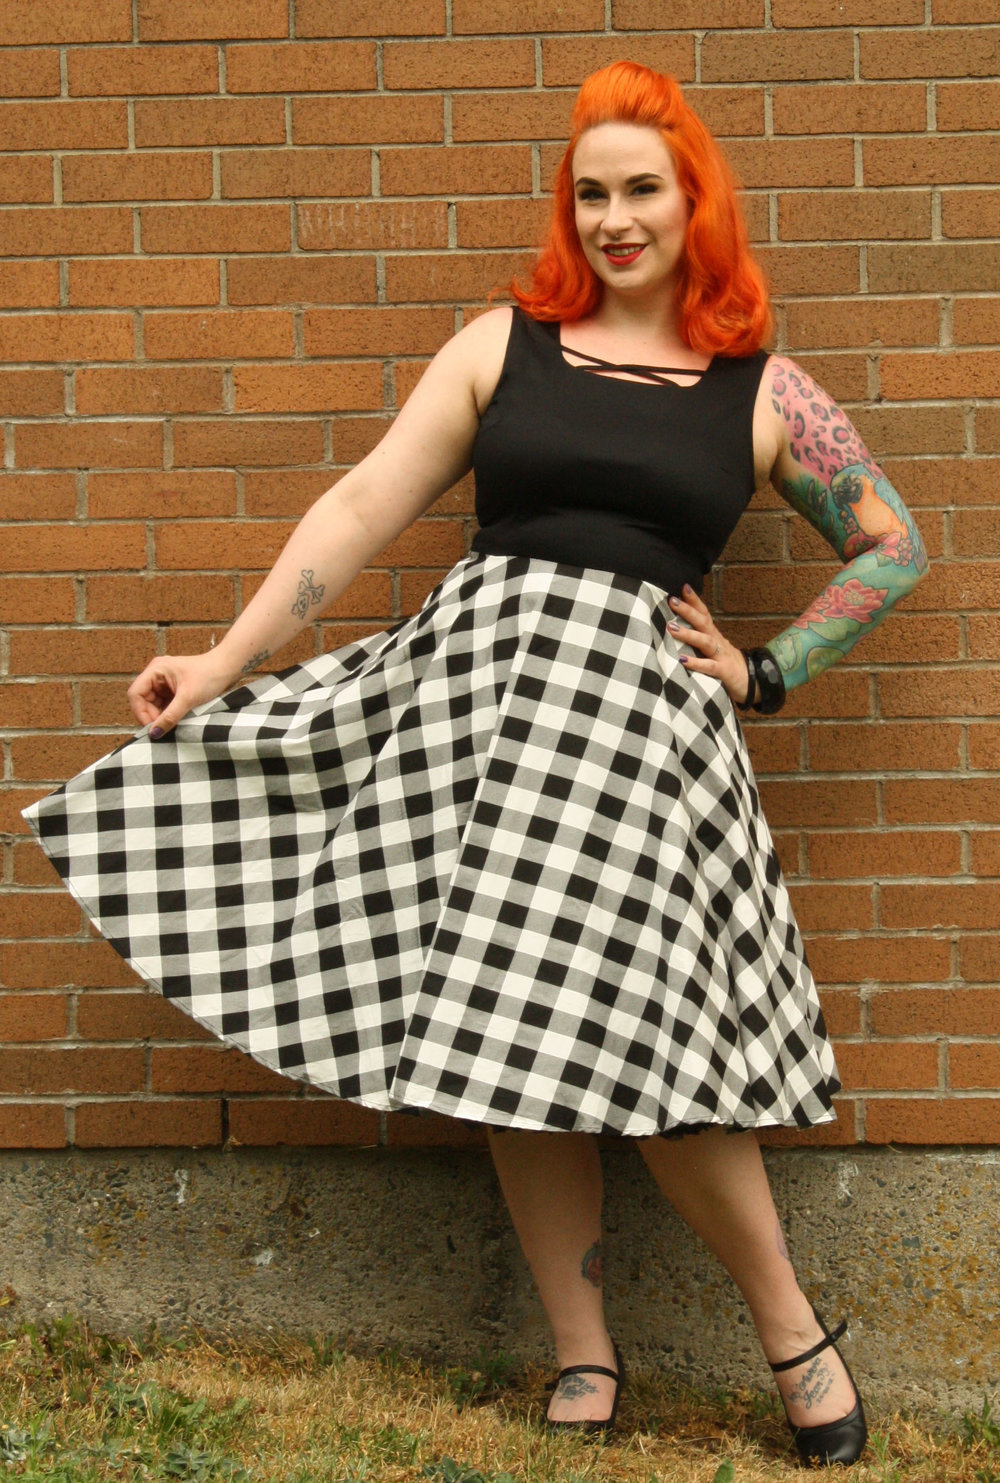 Dresses - Pinup Clothing, Vintage Clothing, Plus Size ...